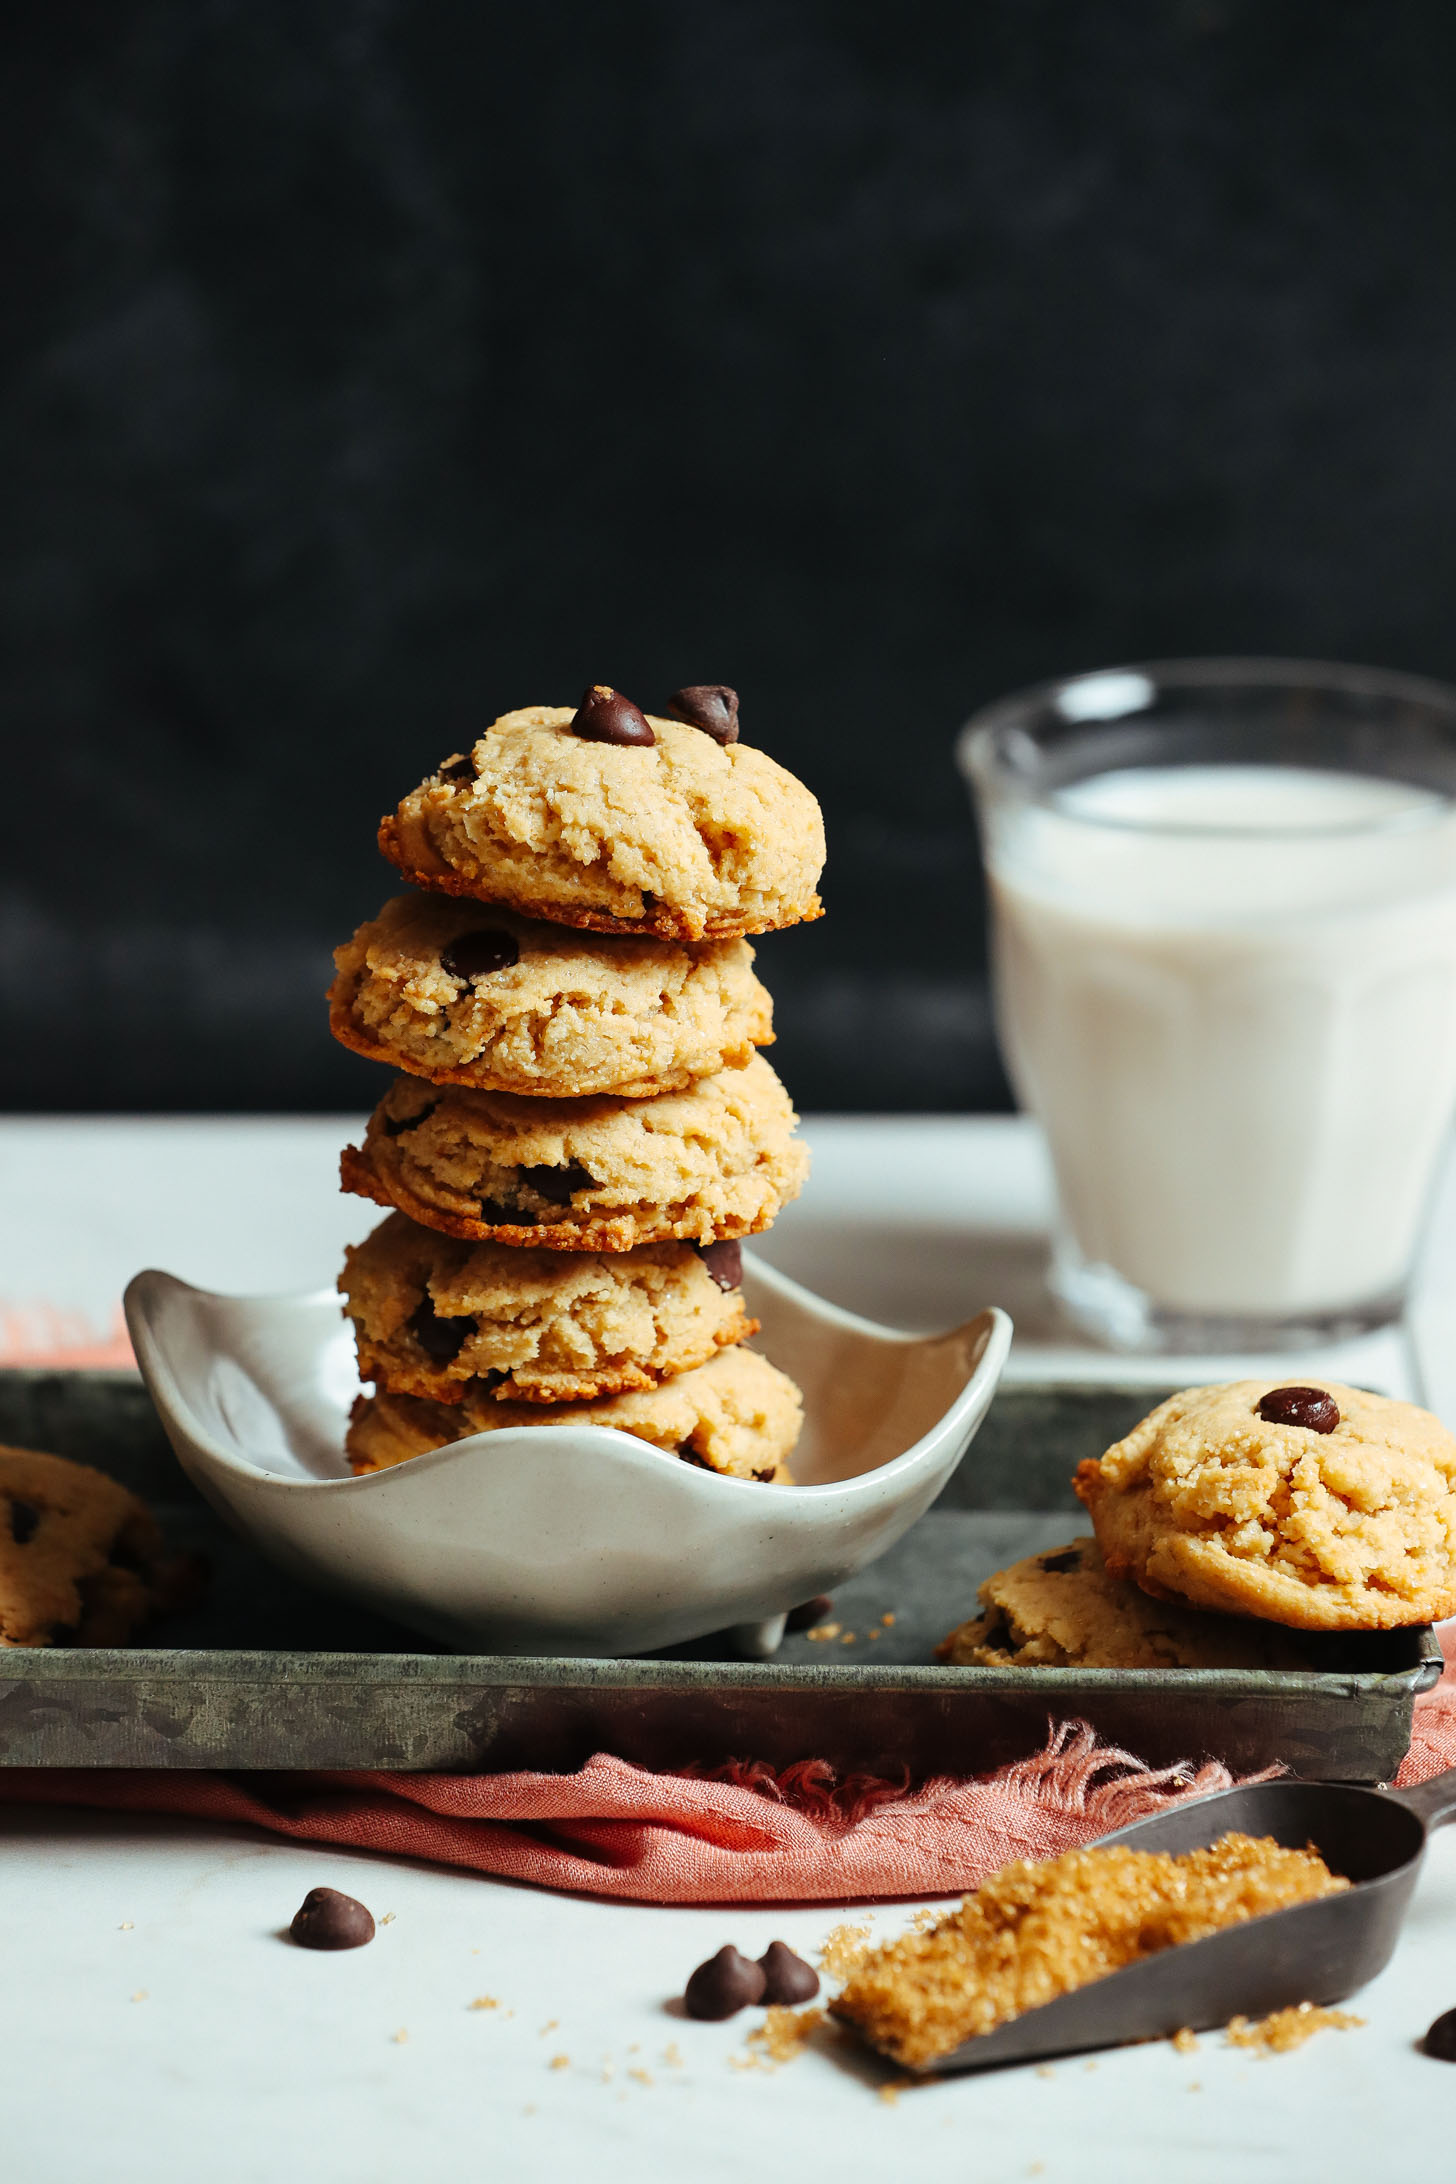 Stack of amazing gluten-free vegan chocolate chip cookies